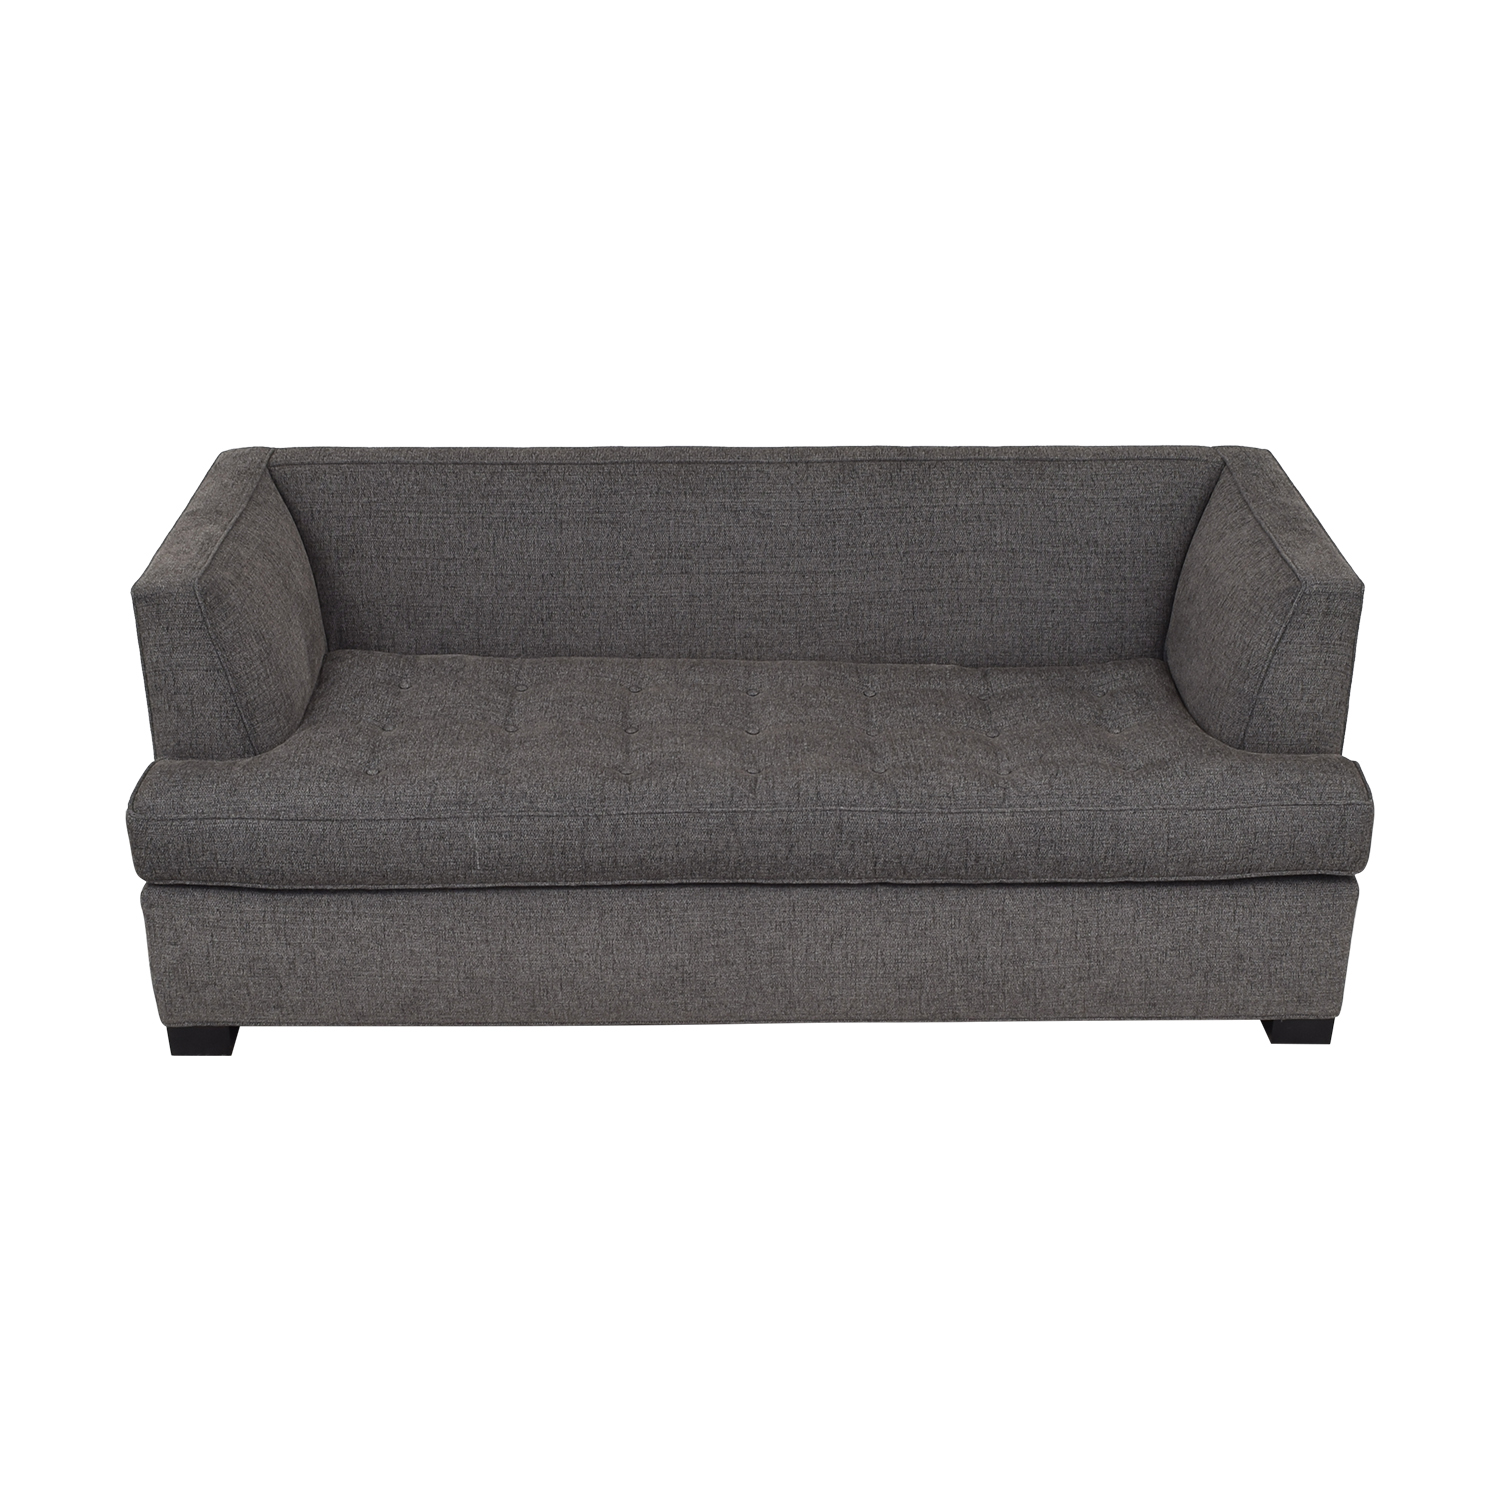 buy Mitchell Gold + Bob Williams Mitchell Gold + Bob Williams Full Sleeper Sofa online